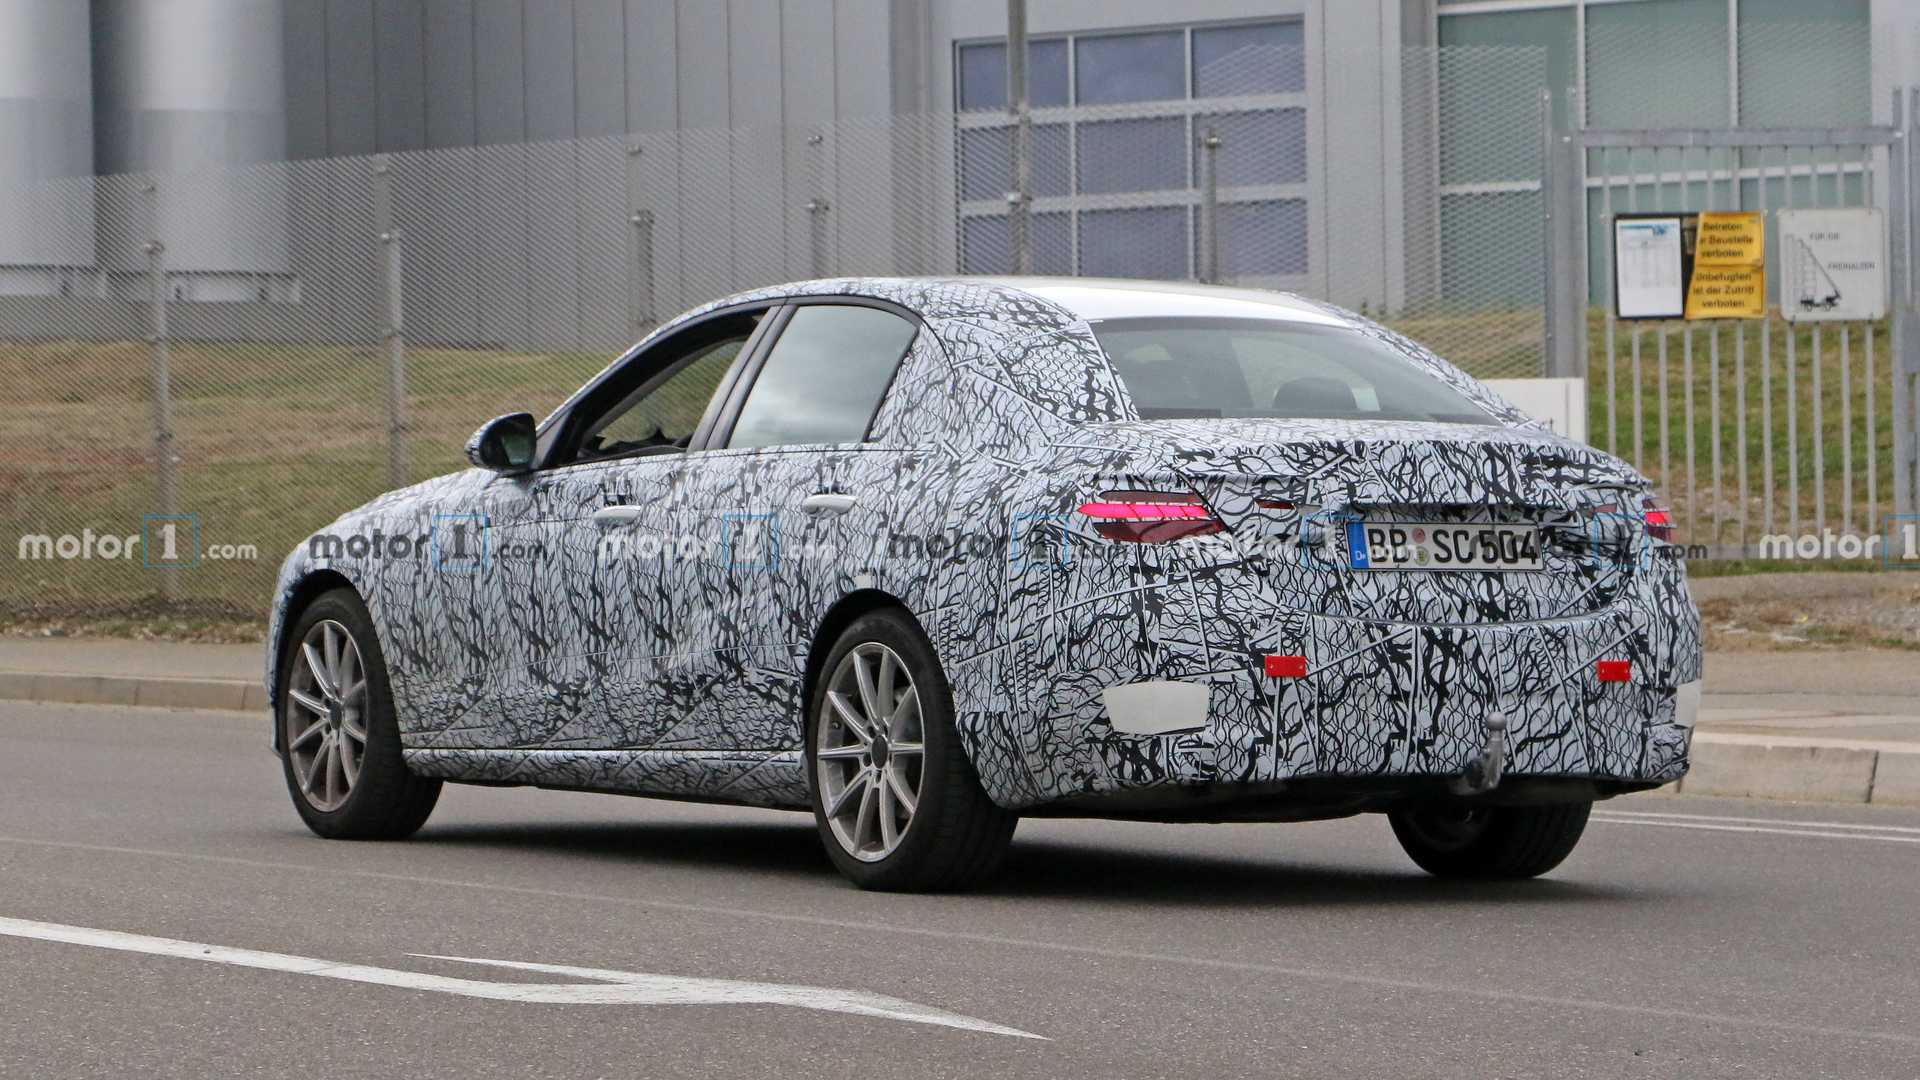 2021-mercedes-c-class-sedan-spy-photo.jp